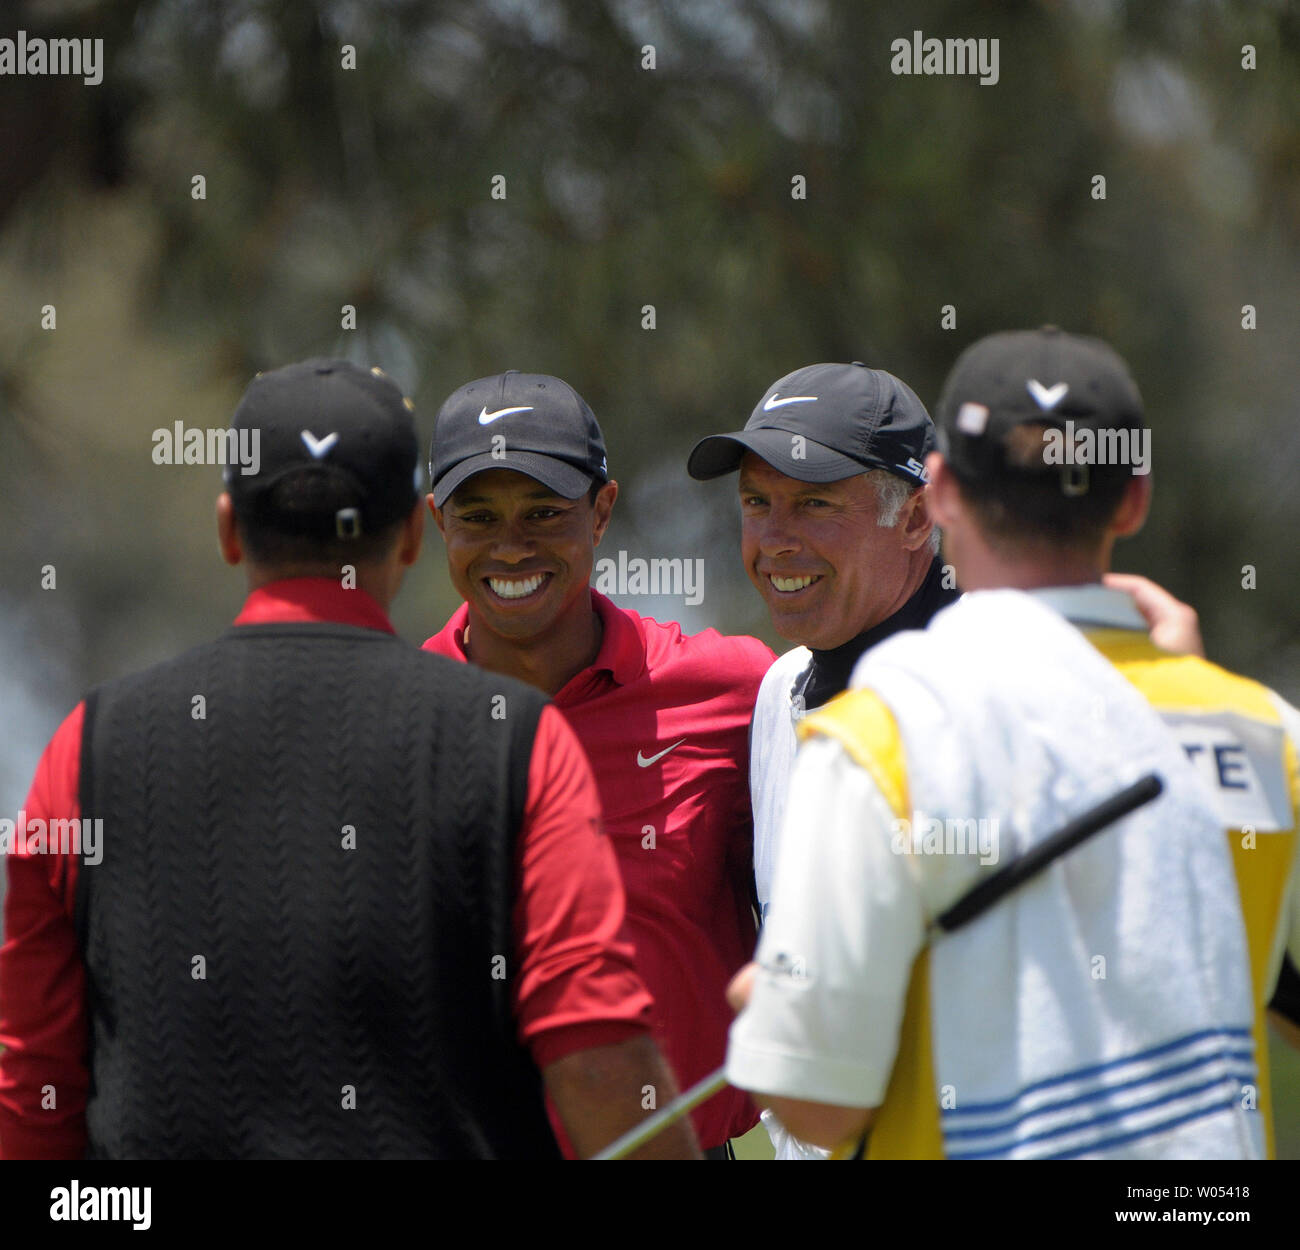 Tiger Woods with caddie Steve Williams (Center) are congratulated by Rocco Mediate (L) and caddie Matt Achatz on winning the 108th US Open at Torrey Pines Golf Course in San Diego on June 16, 2008. (UPI Photo/Earl S. Cryer) - Stock Image